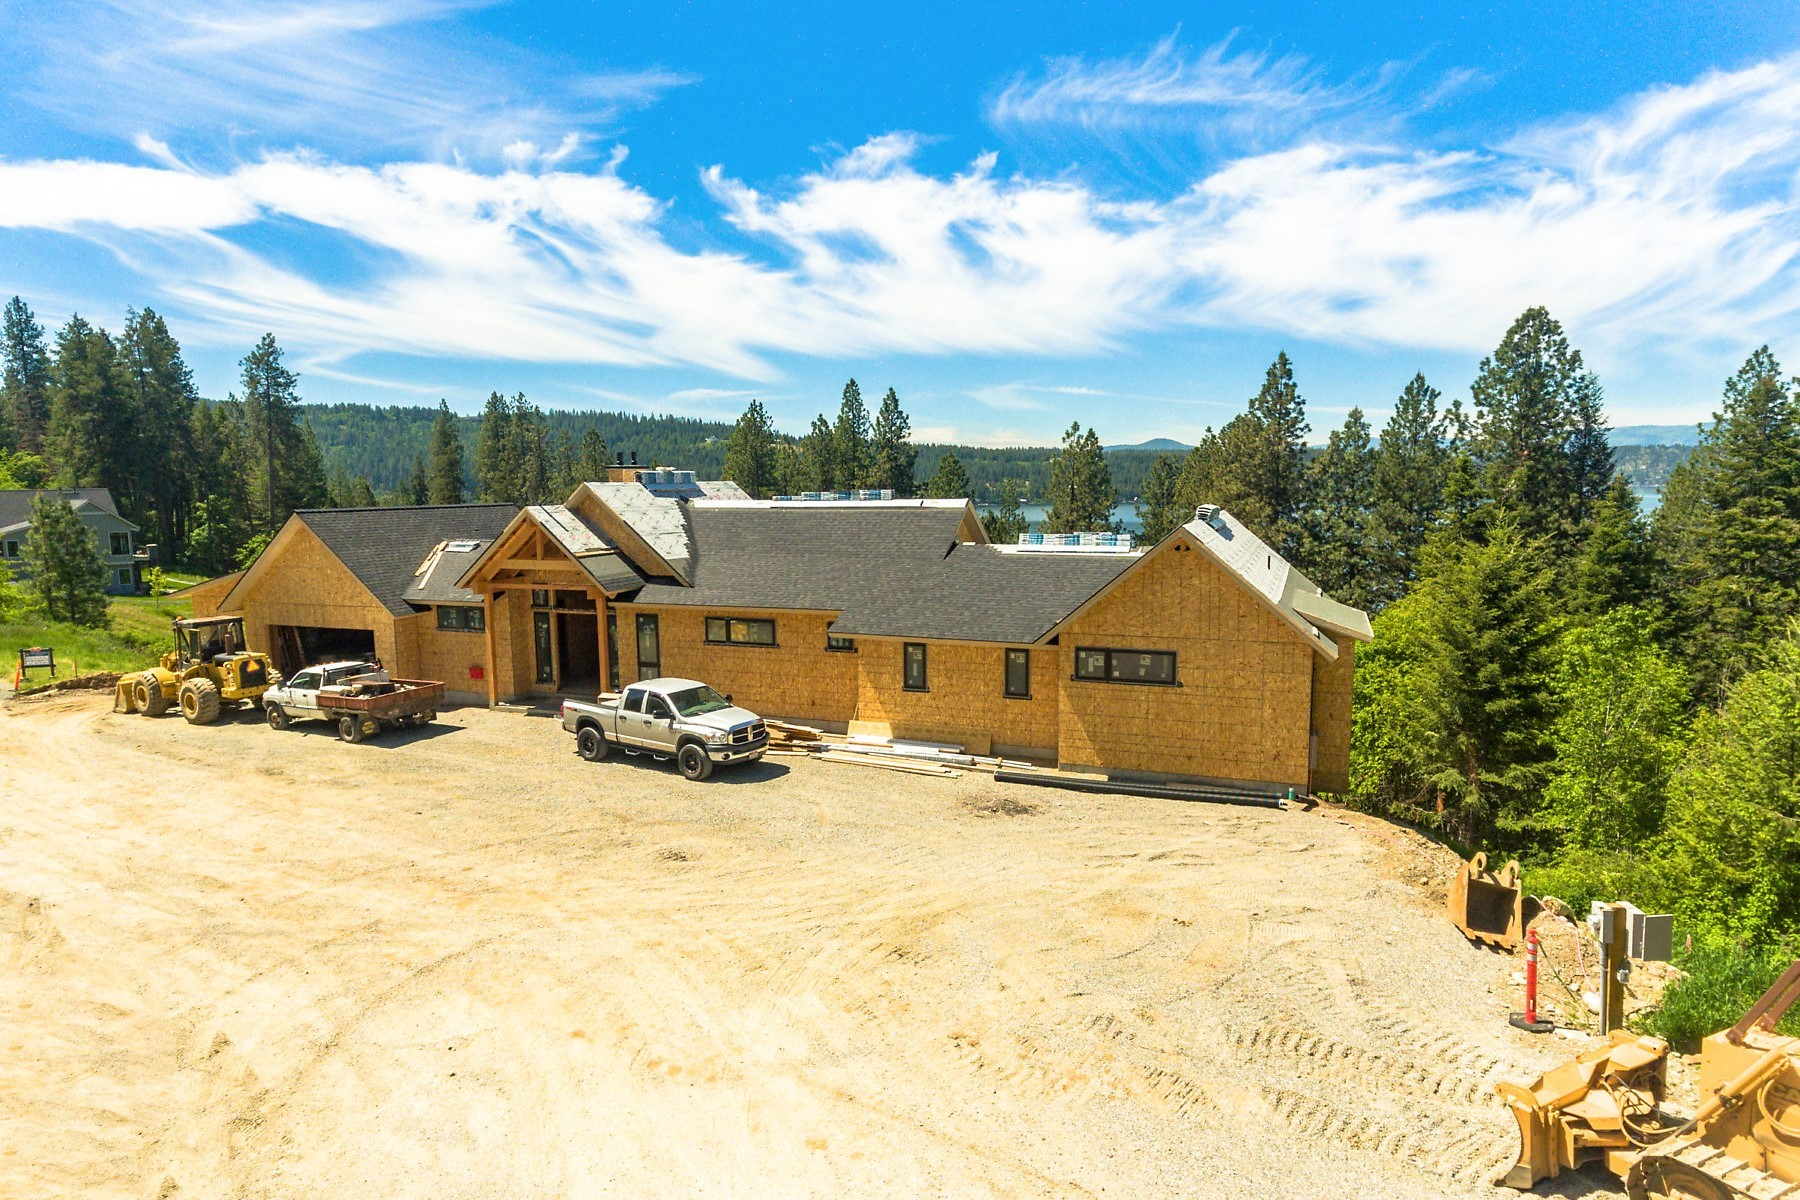 Single Family Homes for Sale at Boasting views over Bennett Bay 5572 E Yellowstone Trail Coeur D Alene, Idaho 83814 United States